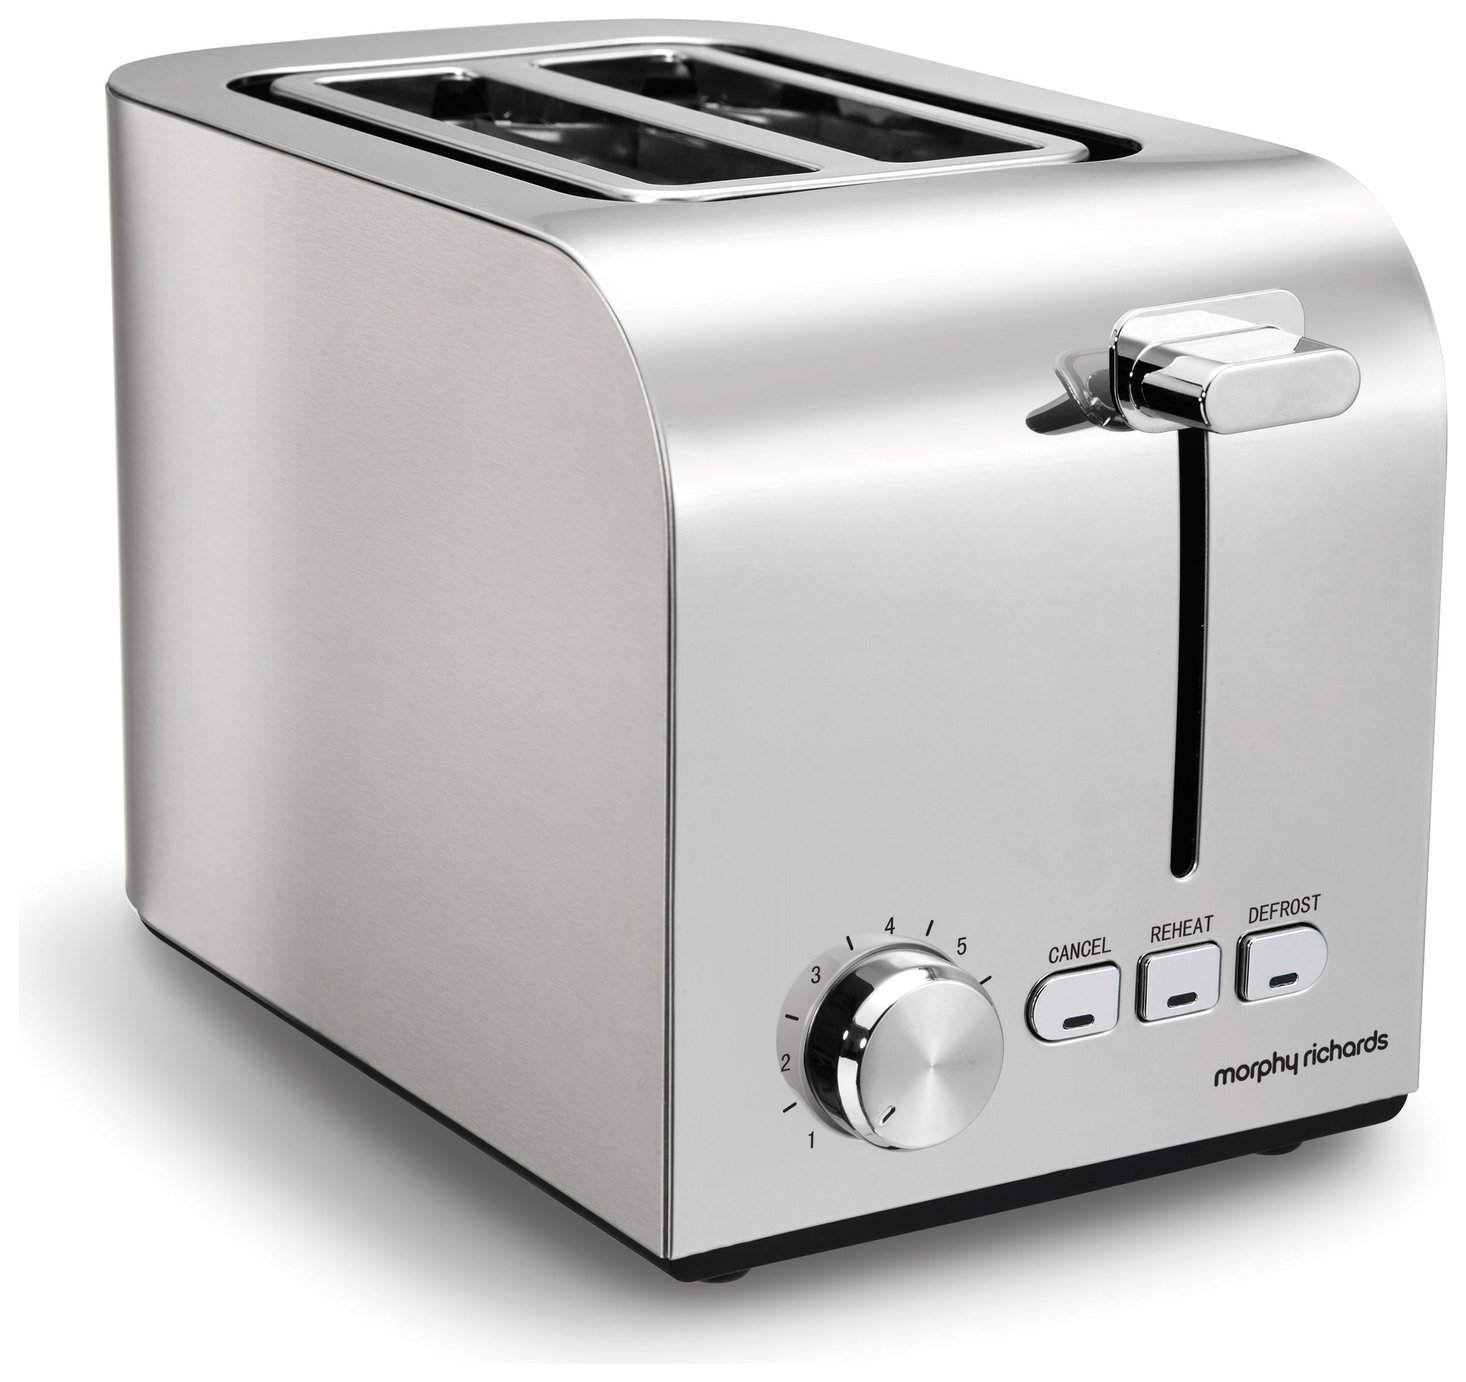 'Morphy Richards 222055 Equip 2 Slice Toaster - Brushed Steel